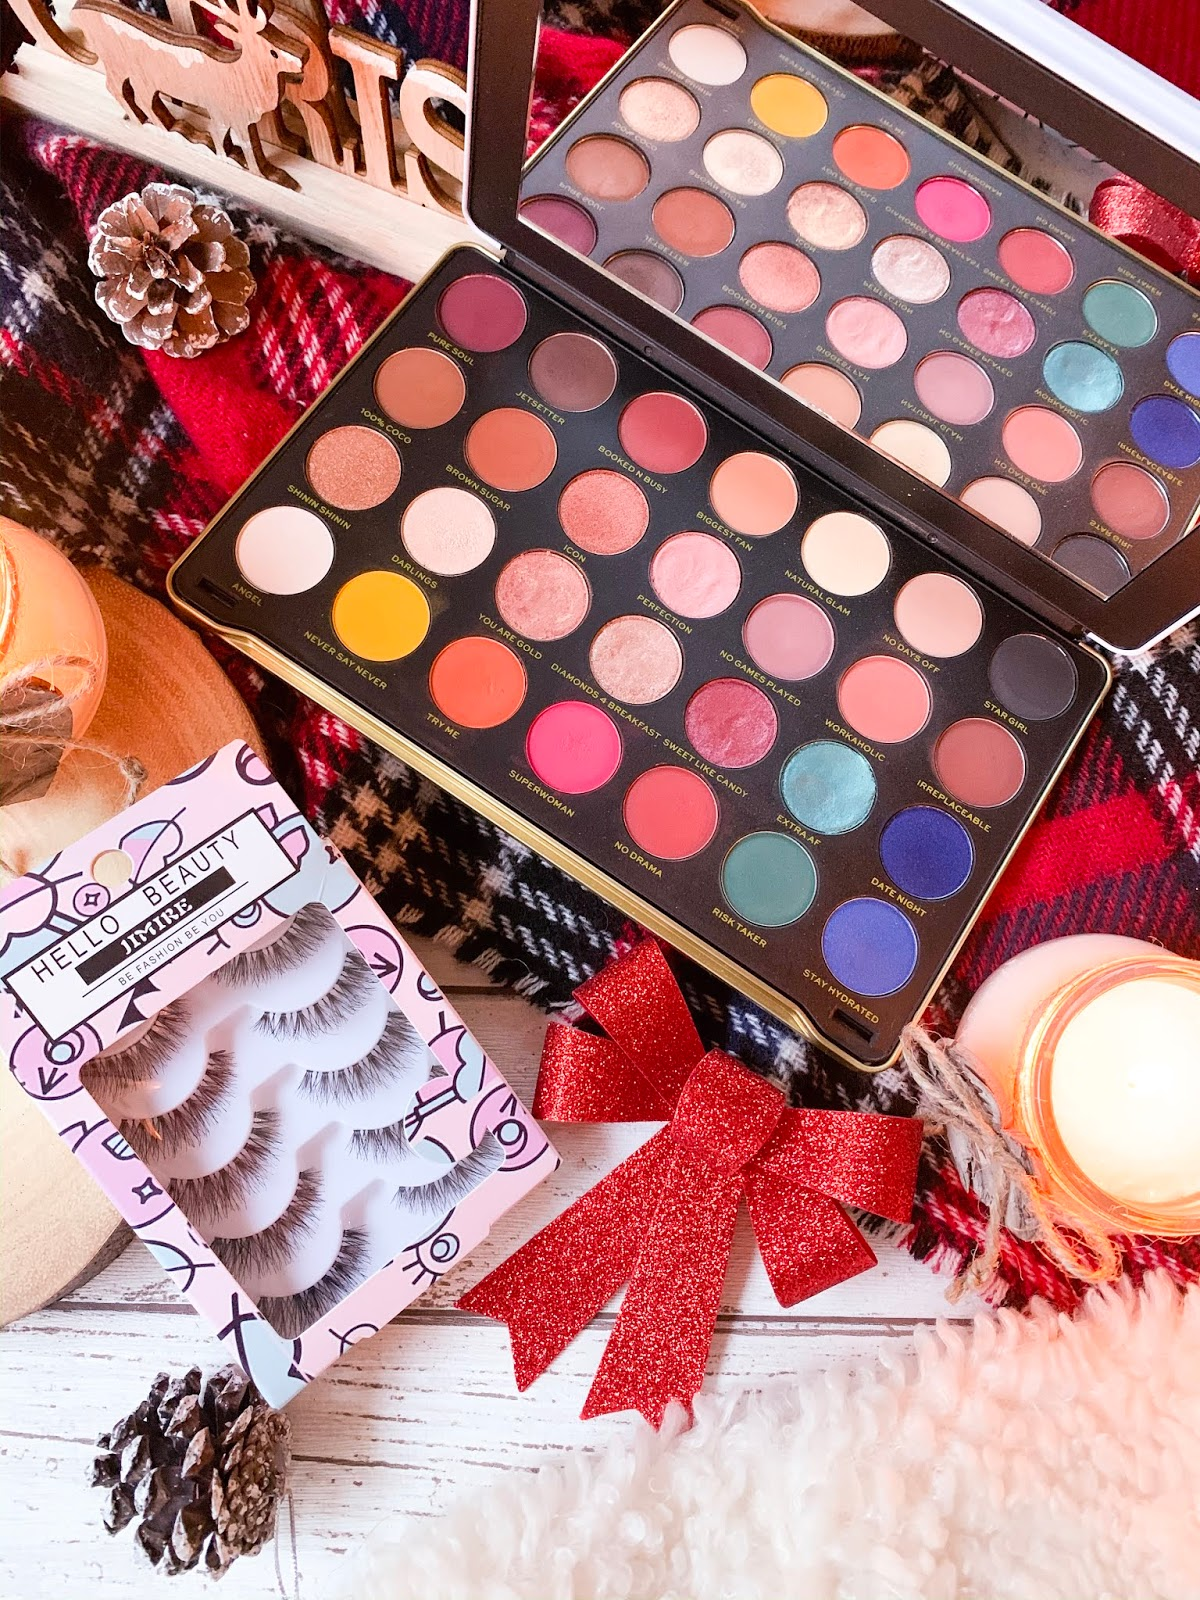 Christmas Gift Guide For Her 2019 Makeup Flatlay